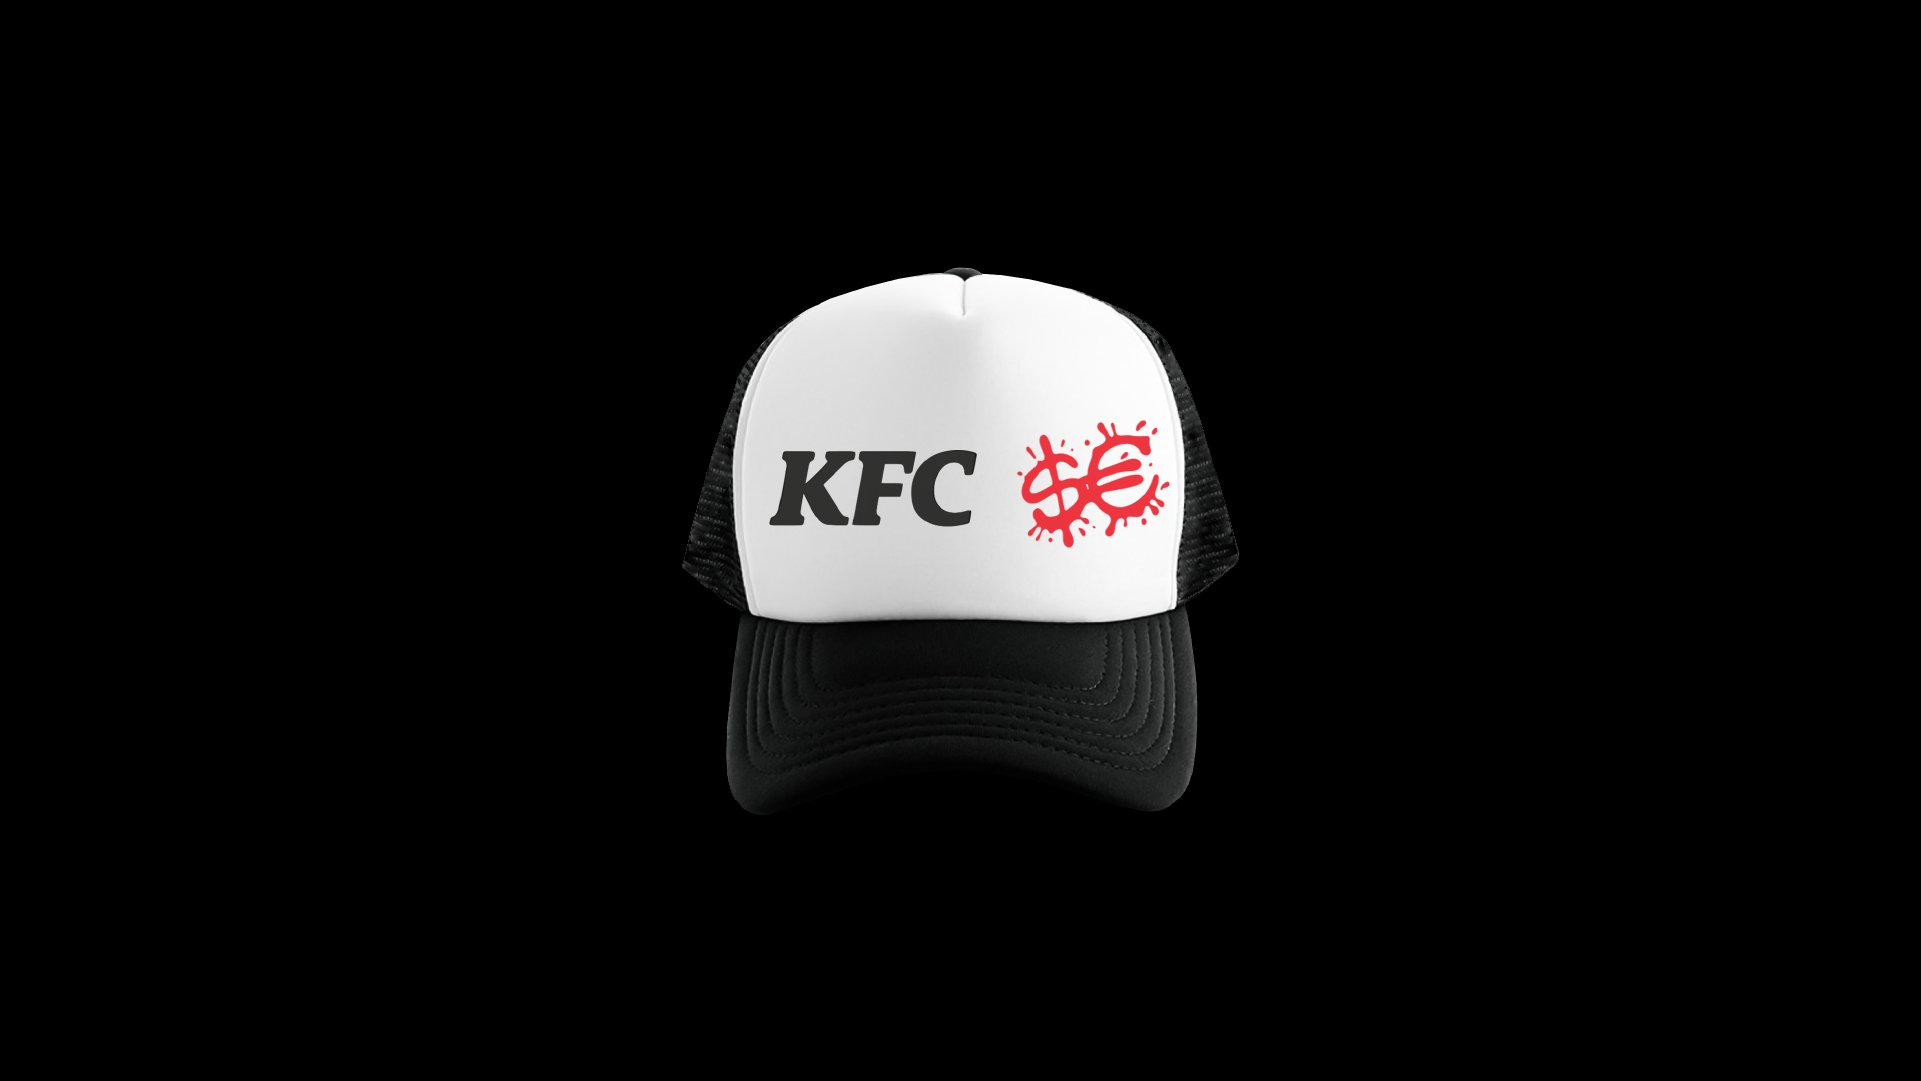 SFERA KFC MERCH 2020 hat 02